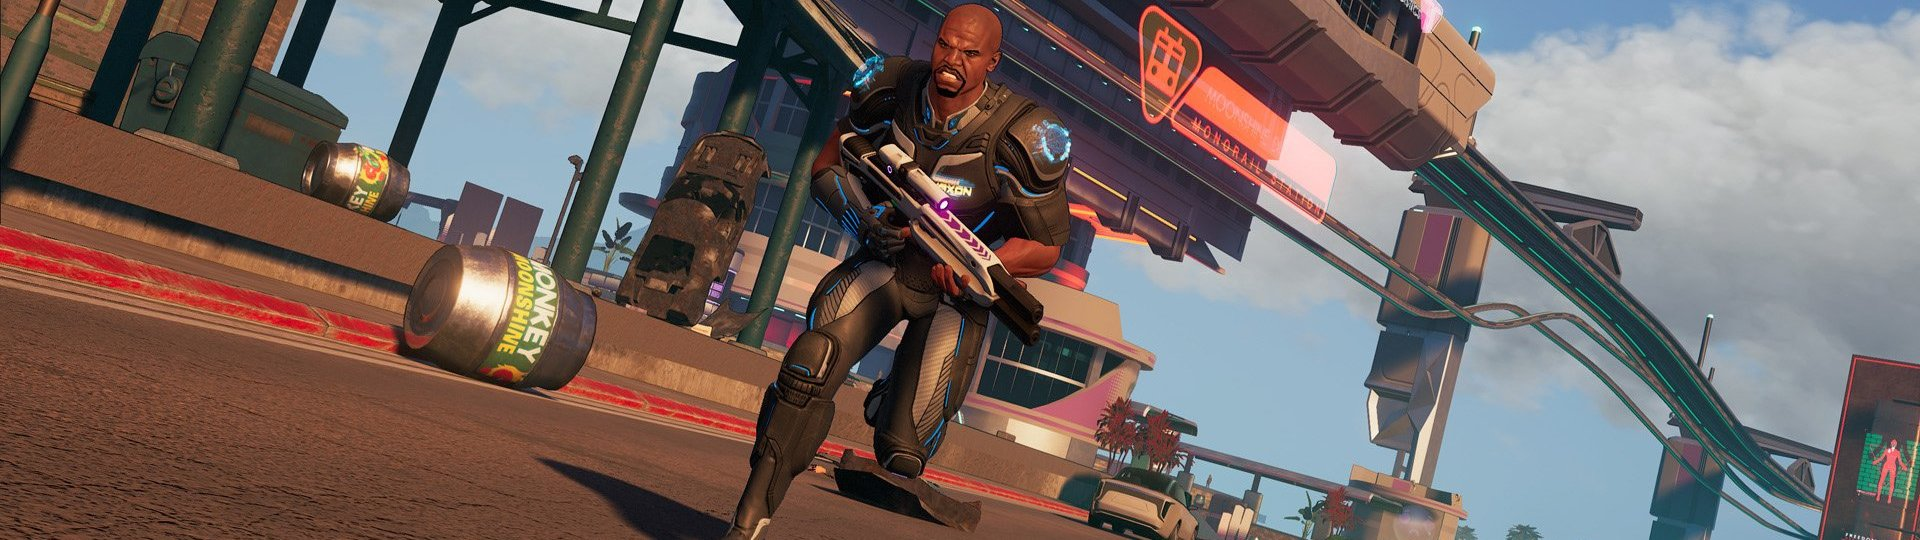 crackdown 3 game guides basic beginner